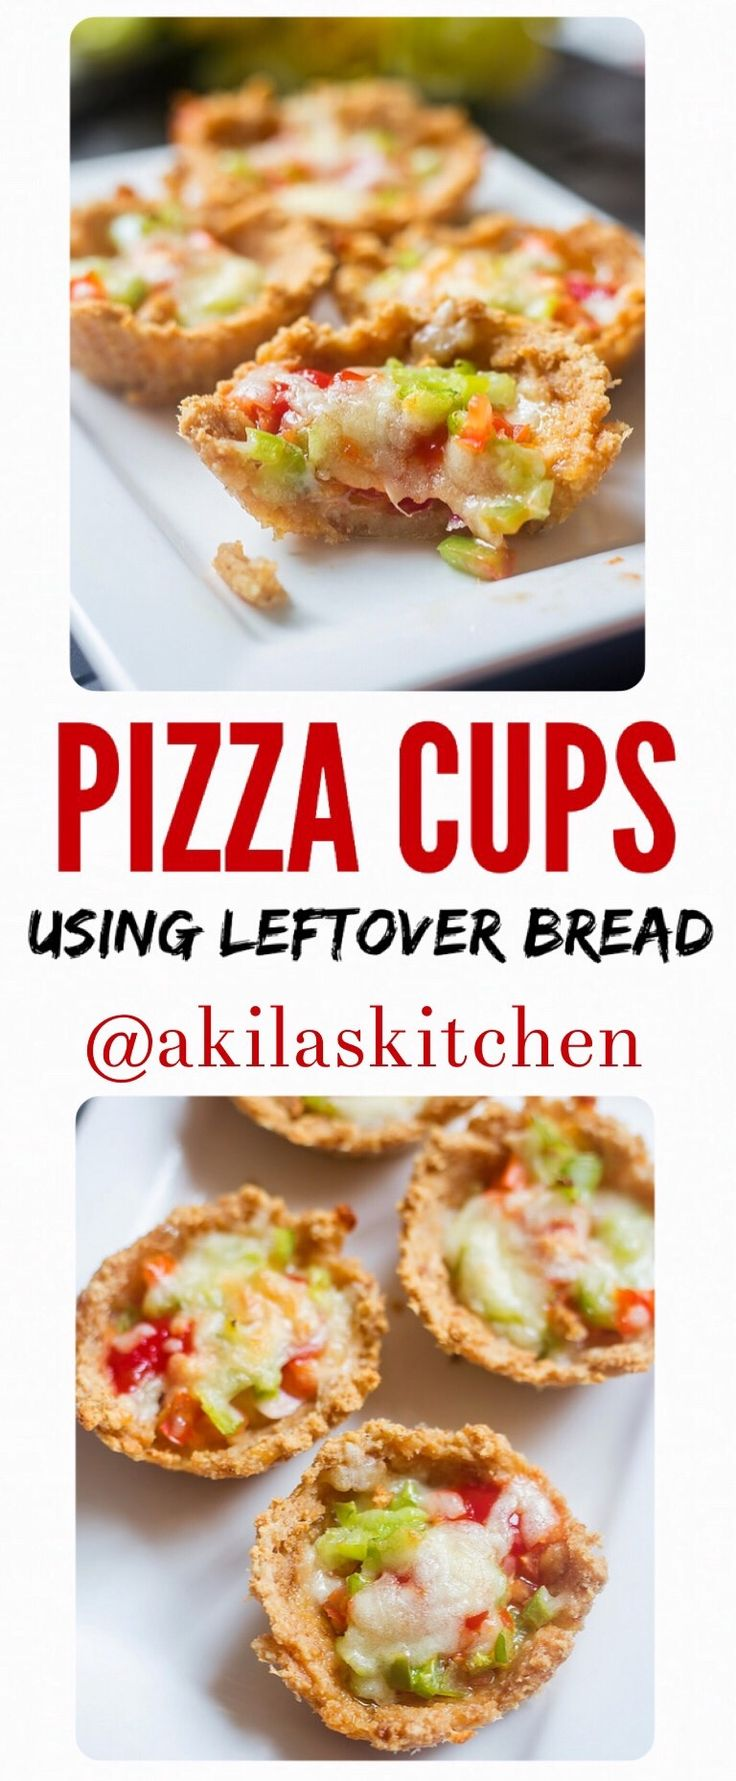 Pizza cups using left over bread